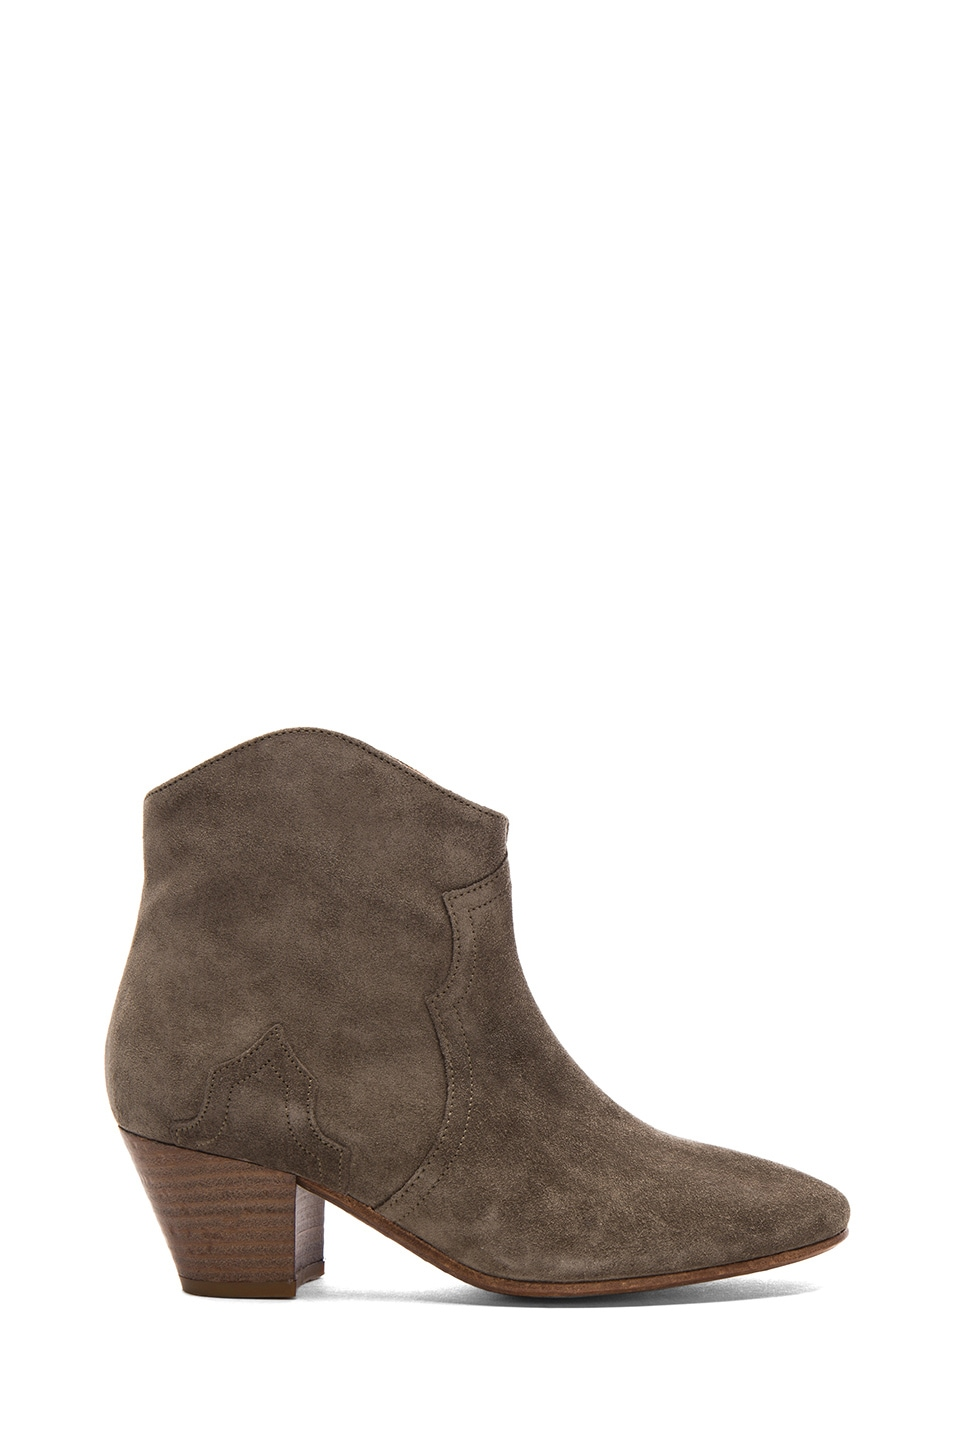 Image 1 of Isabel Marant Dicker Calfskin Velvet Leather Boots in Taupe